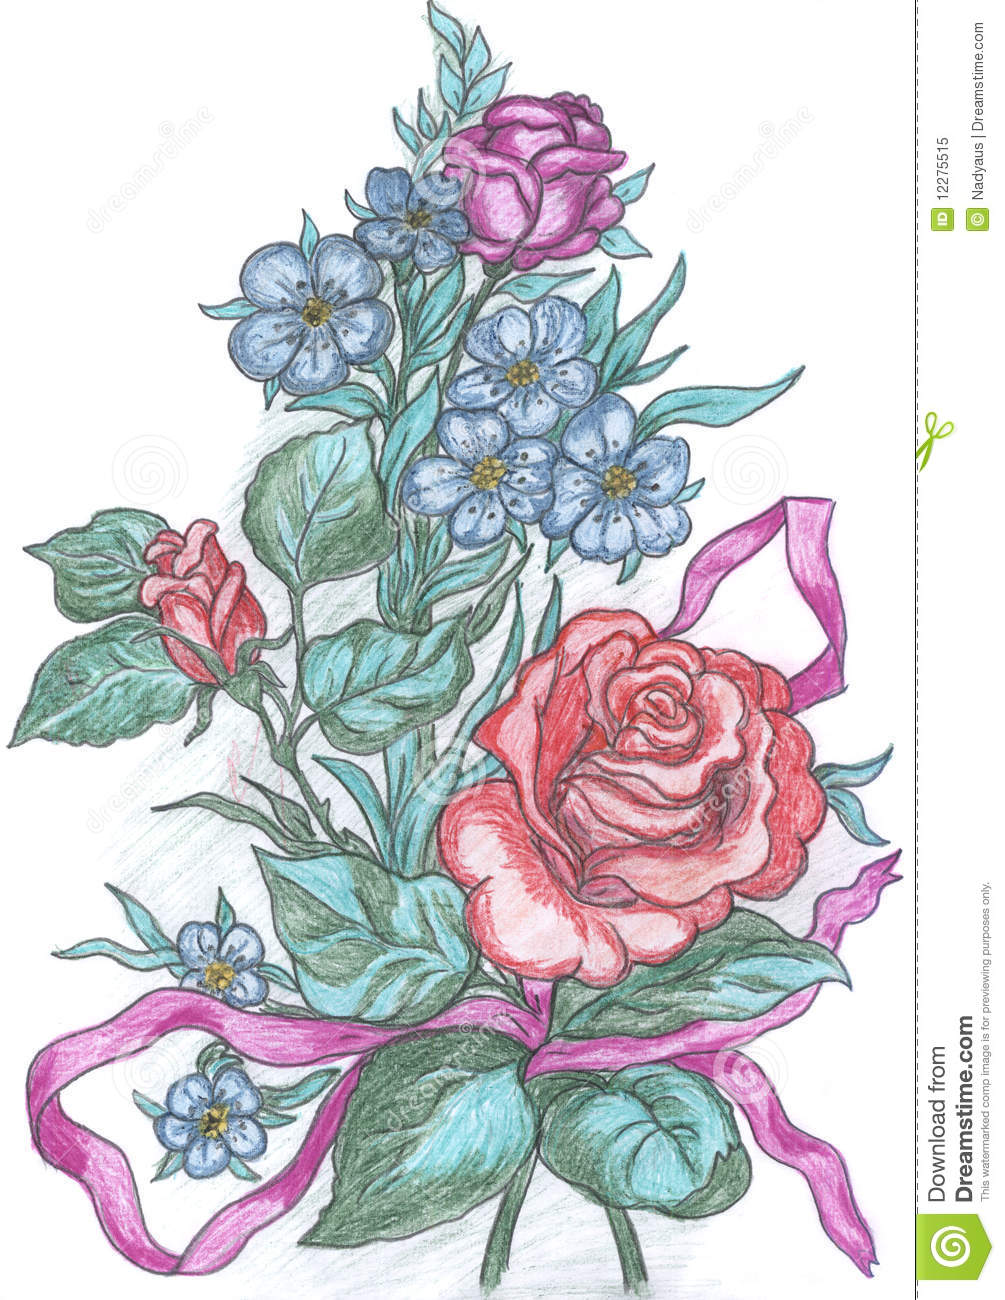 Flowers sketch drawing of greeting card stock illustration flowers sketch drawing of greeting card kristyandbryce Image collections